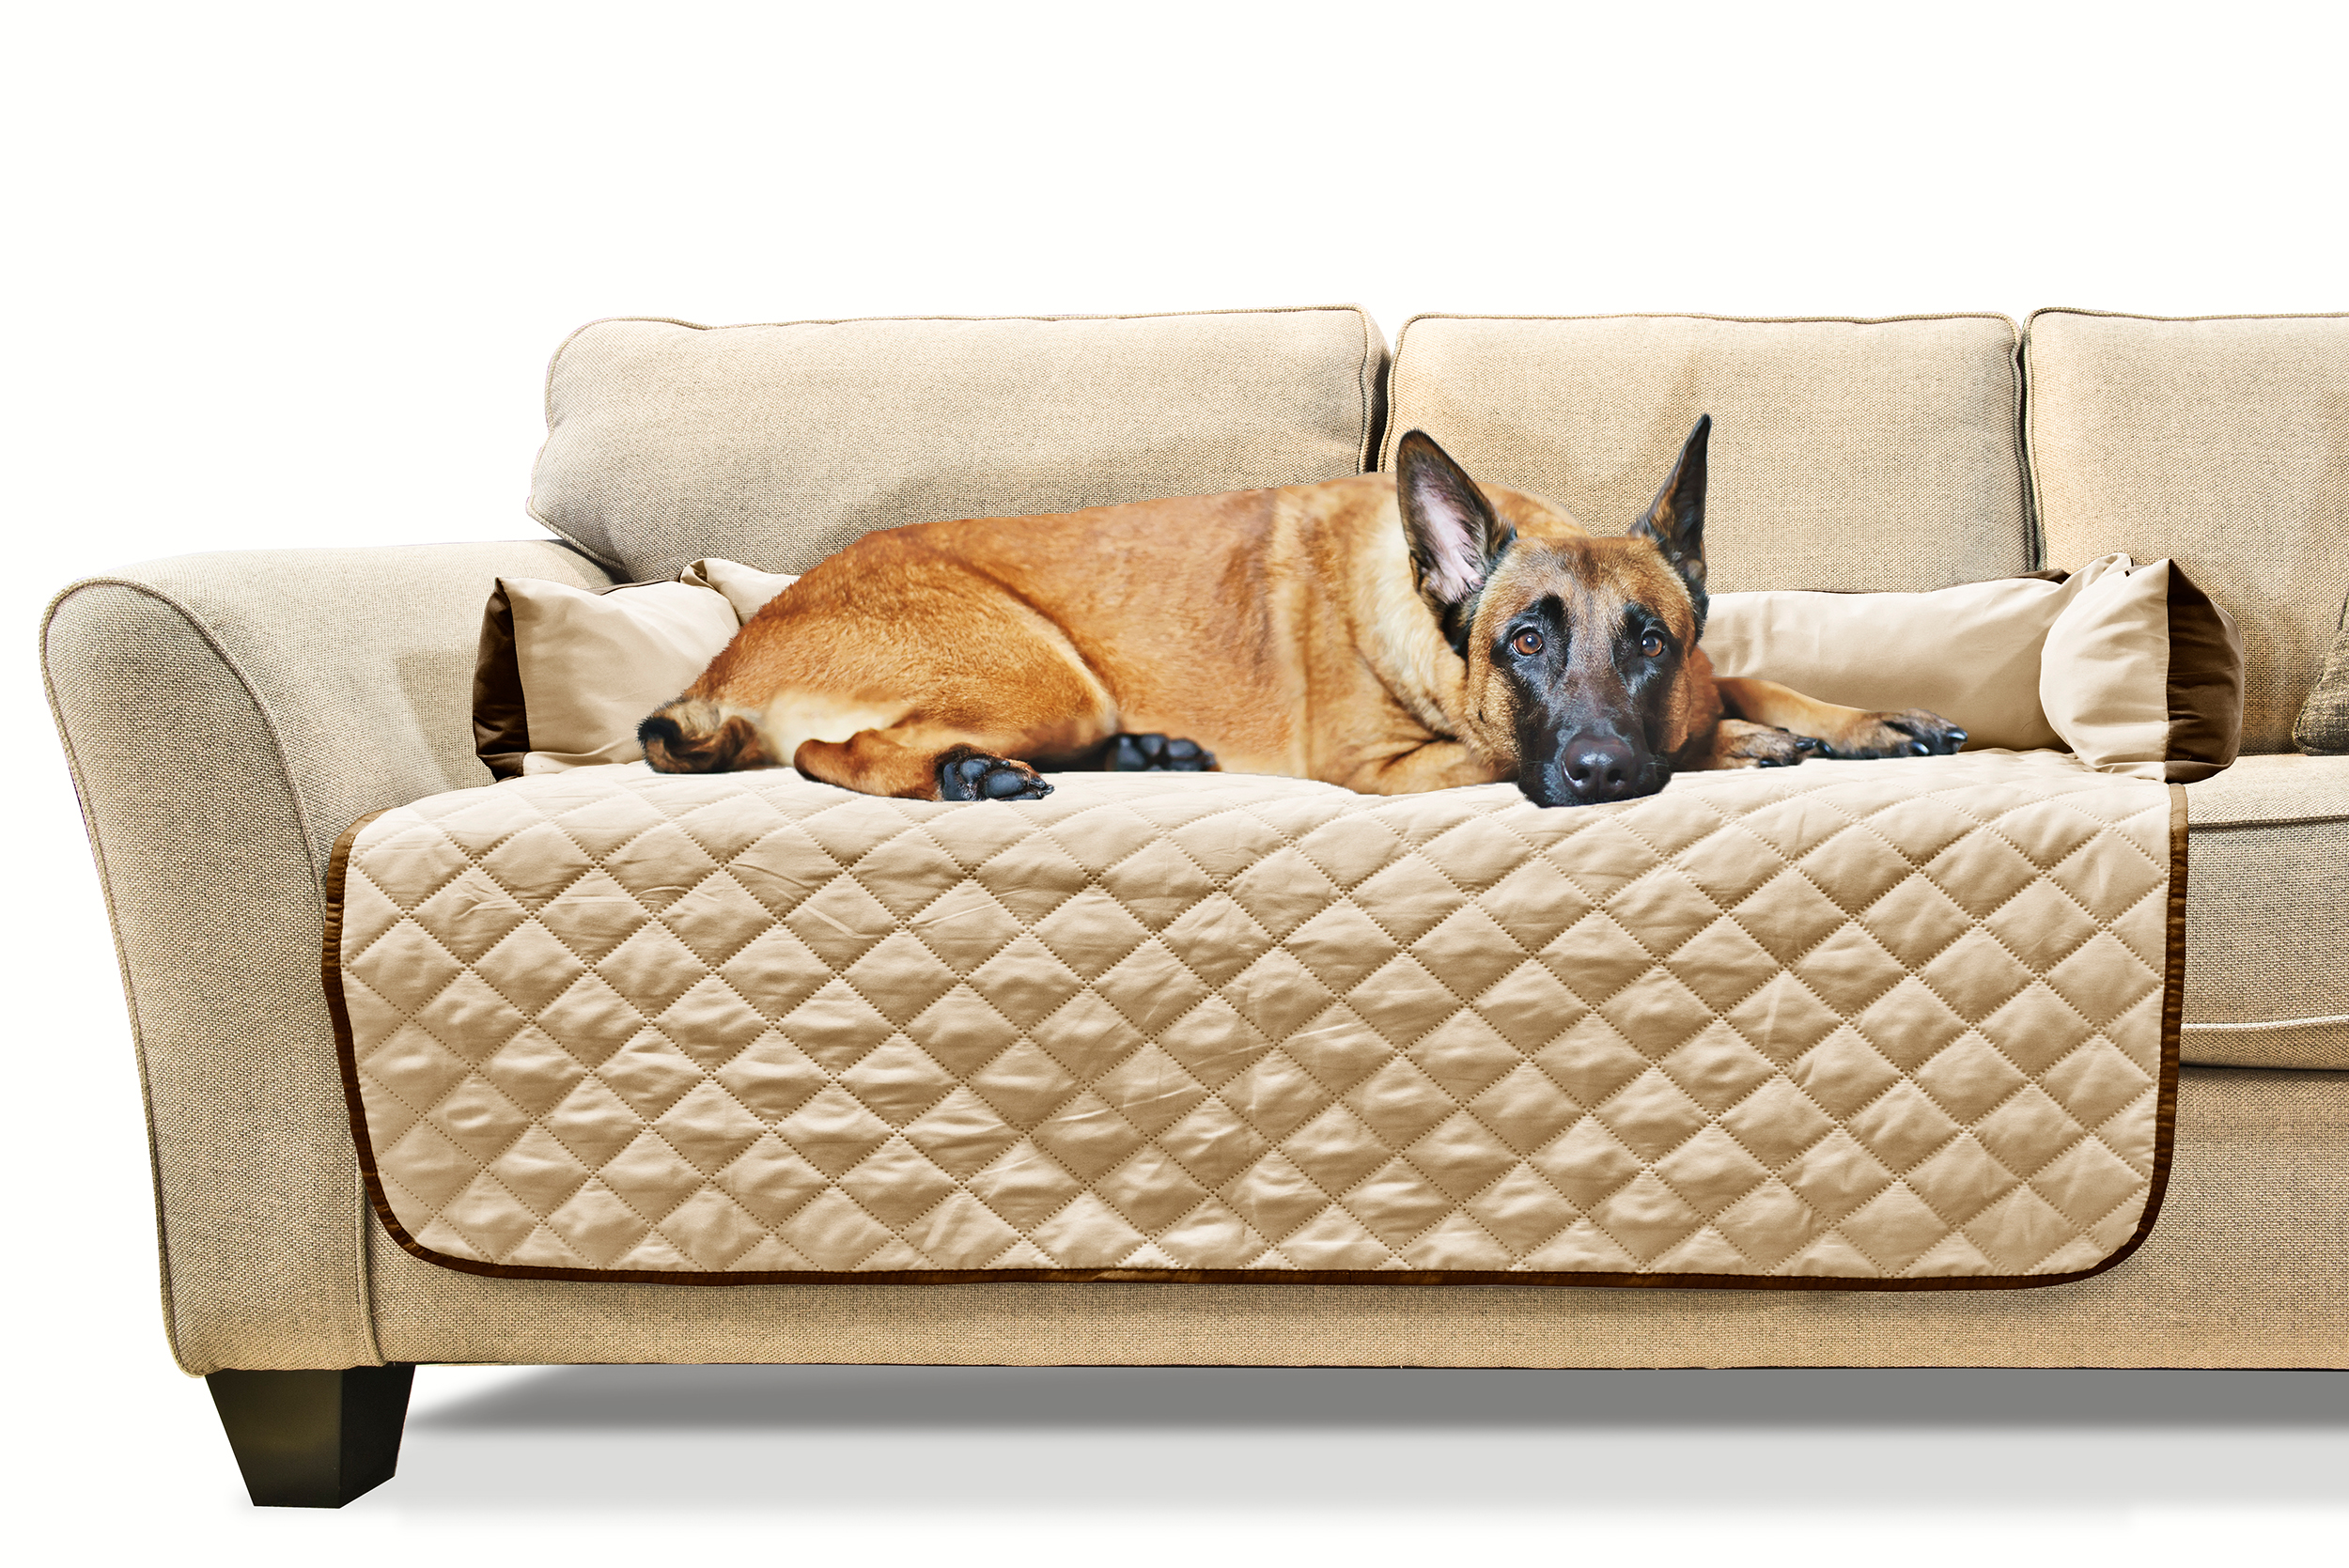 covered dog bed furhaven sofa buddy pet bed furniture cover ebay 28760